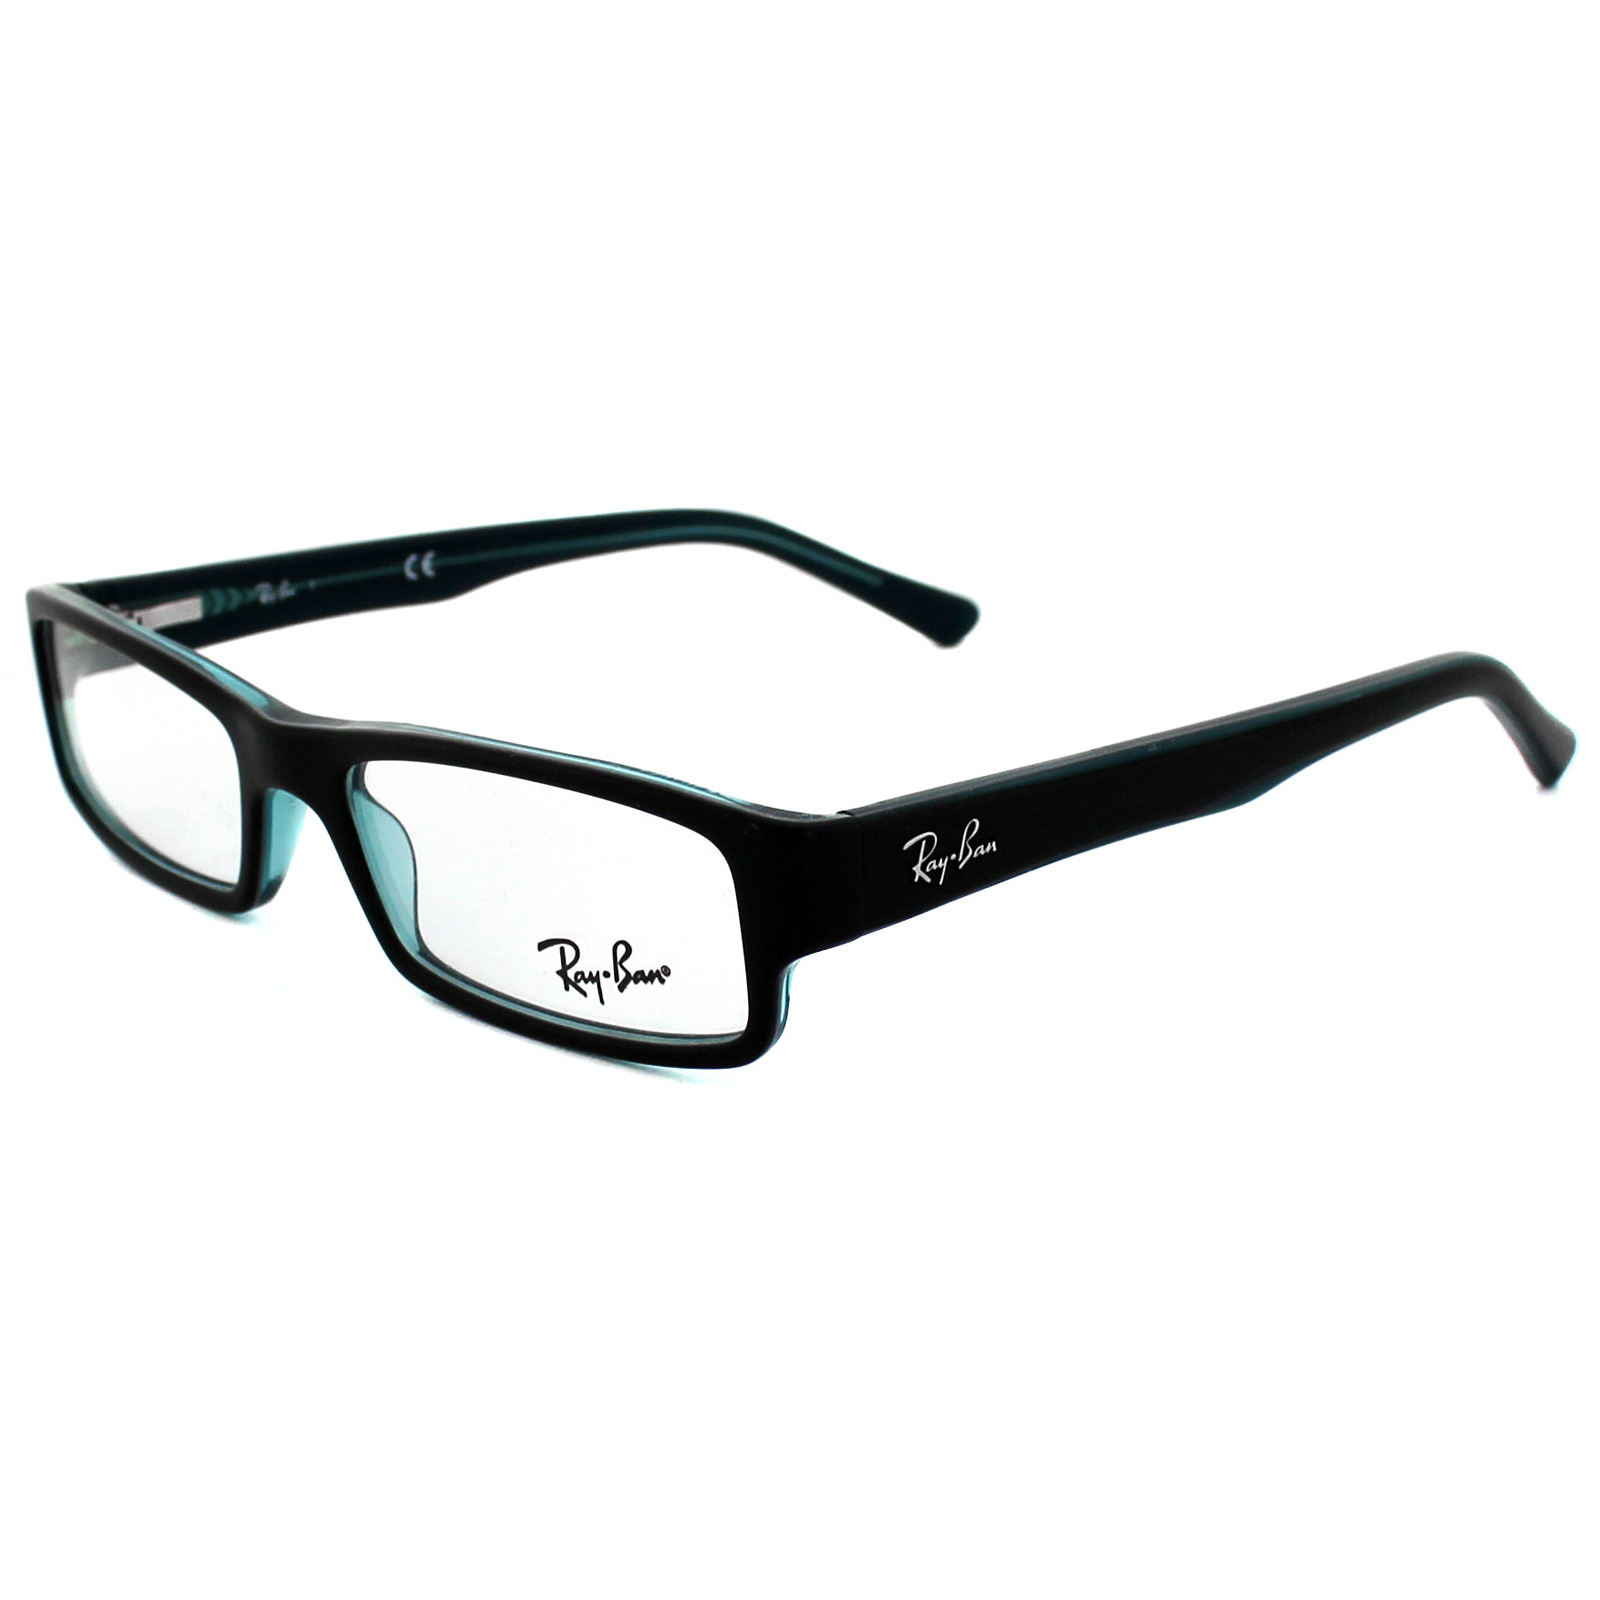 discount ray ban eyeglasses  ray ban glasses frames 5246 5092 black grey turquoise